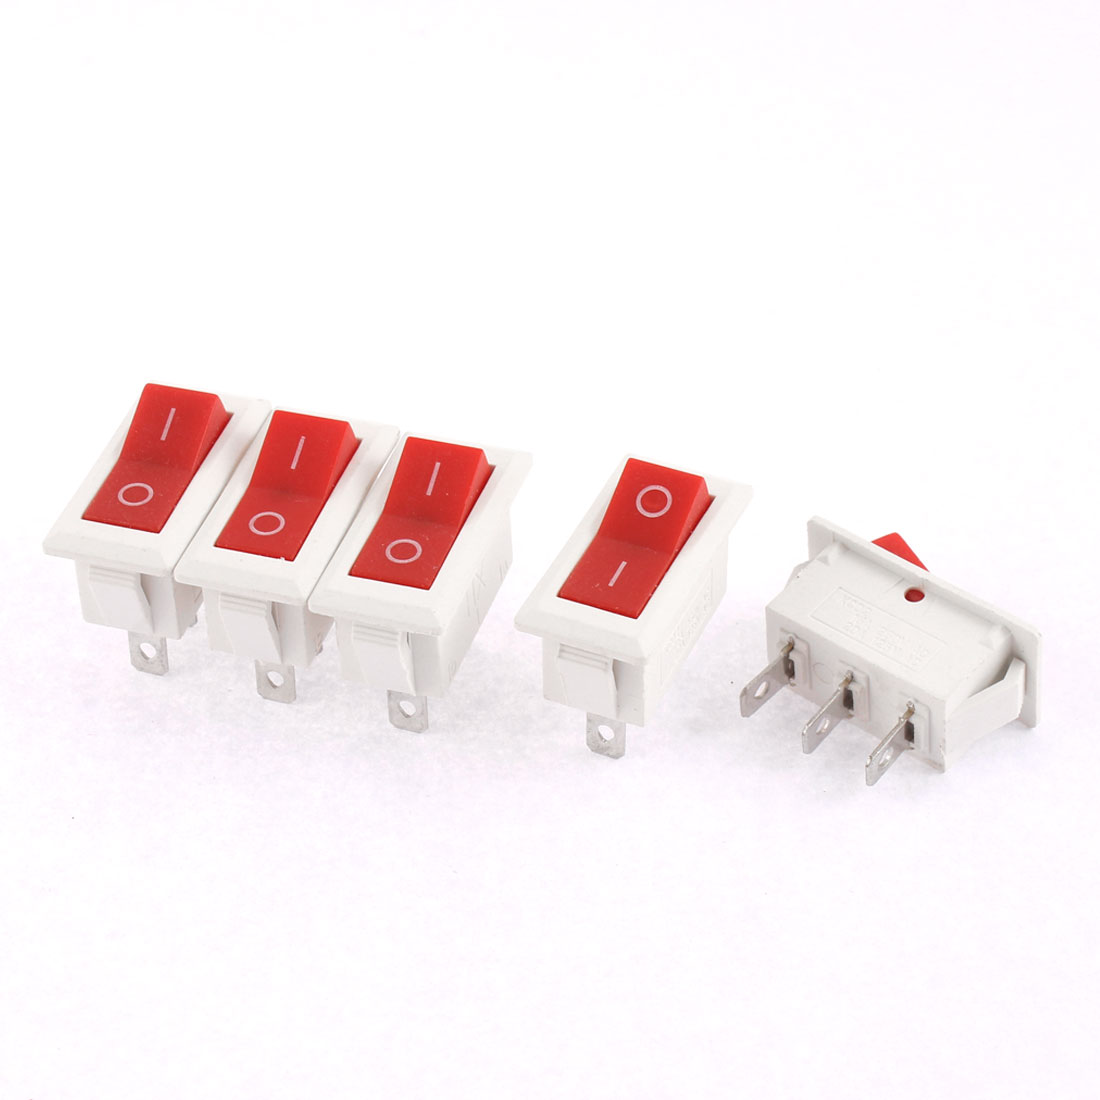 5Pcs 2 Position Snap in White Plastic SPDT Boat Rocker Switch AC 250V 16A 125V 20A